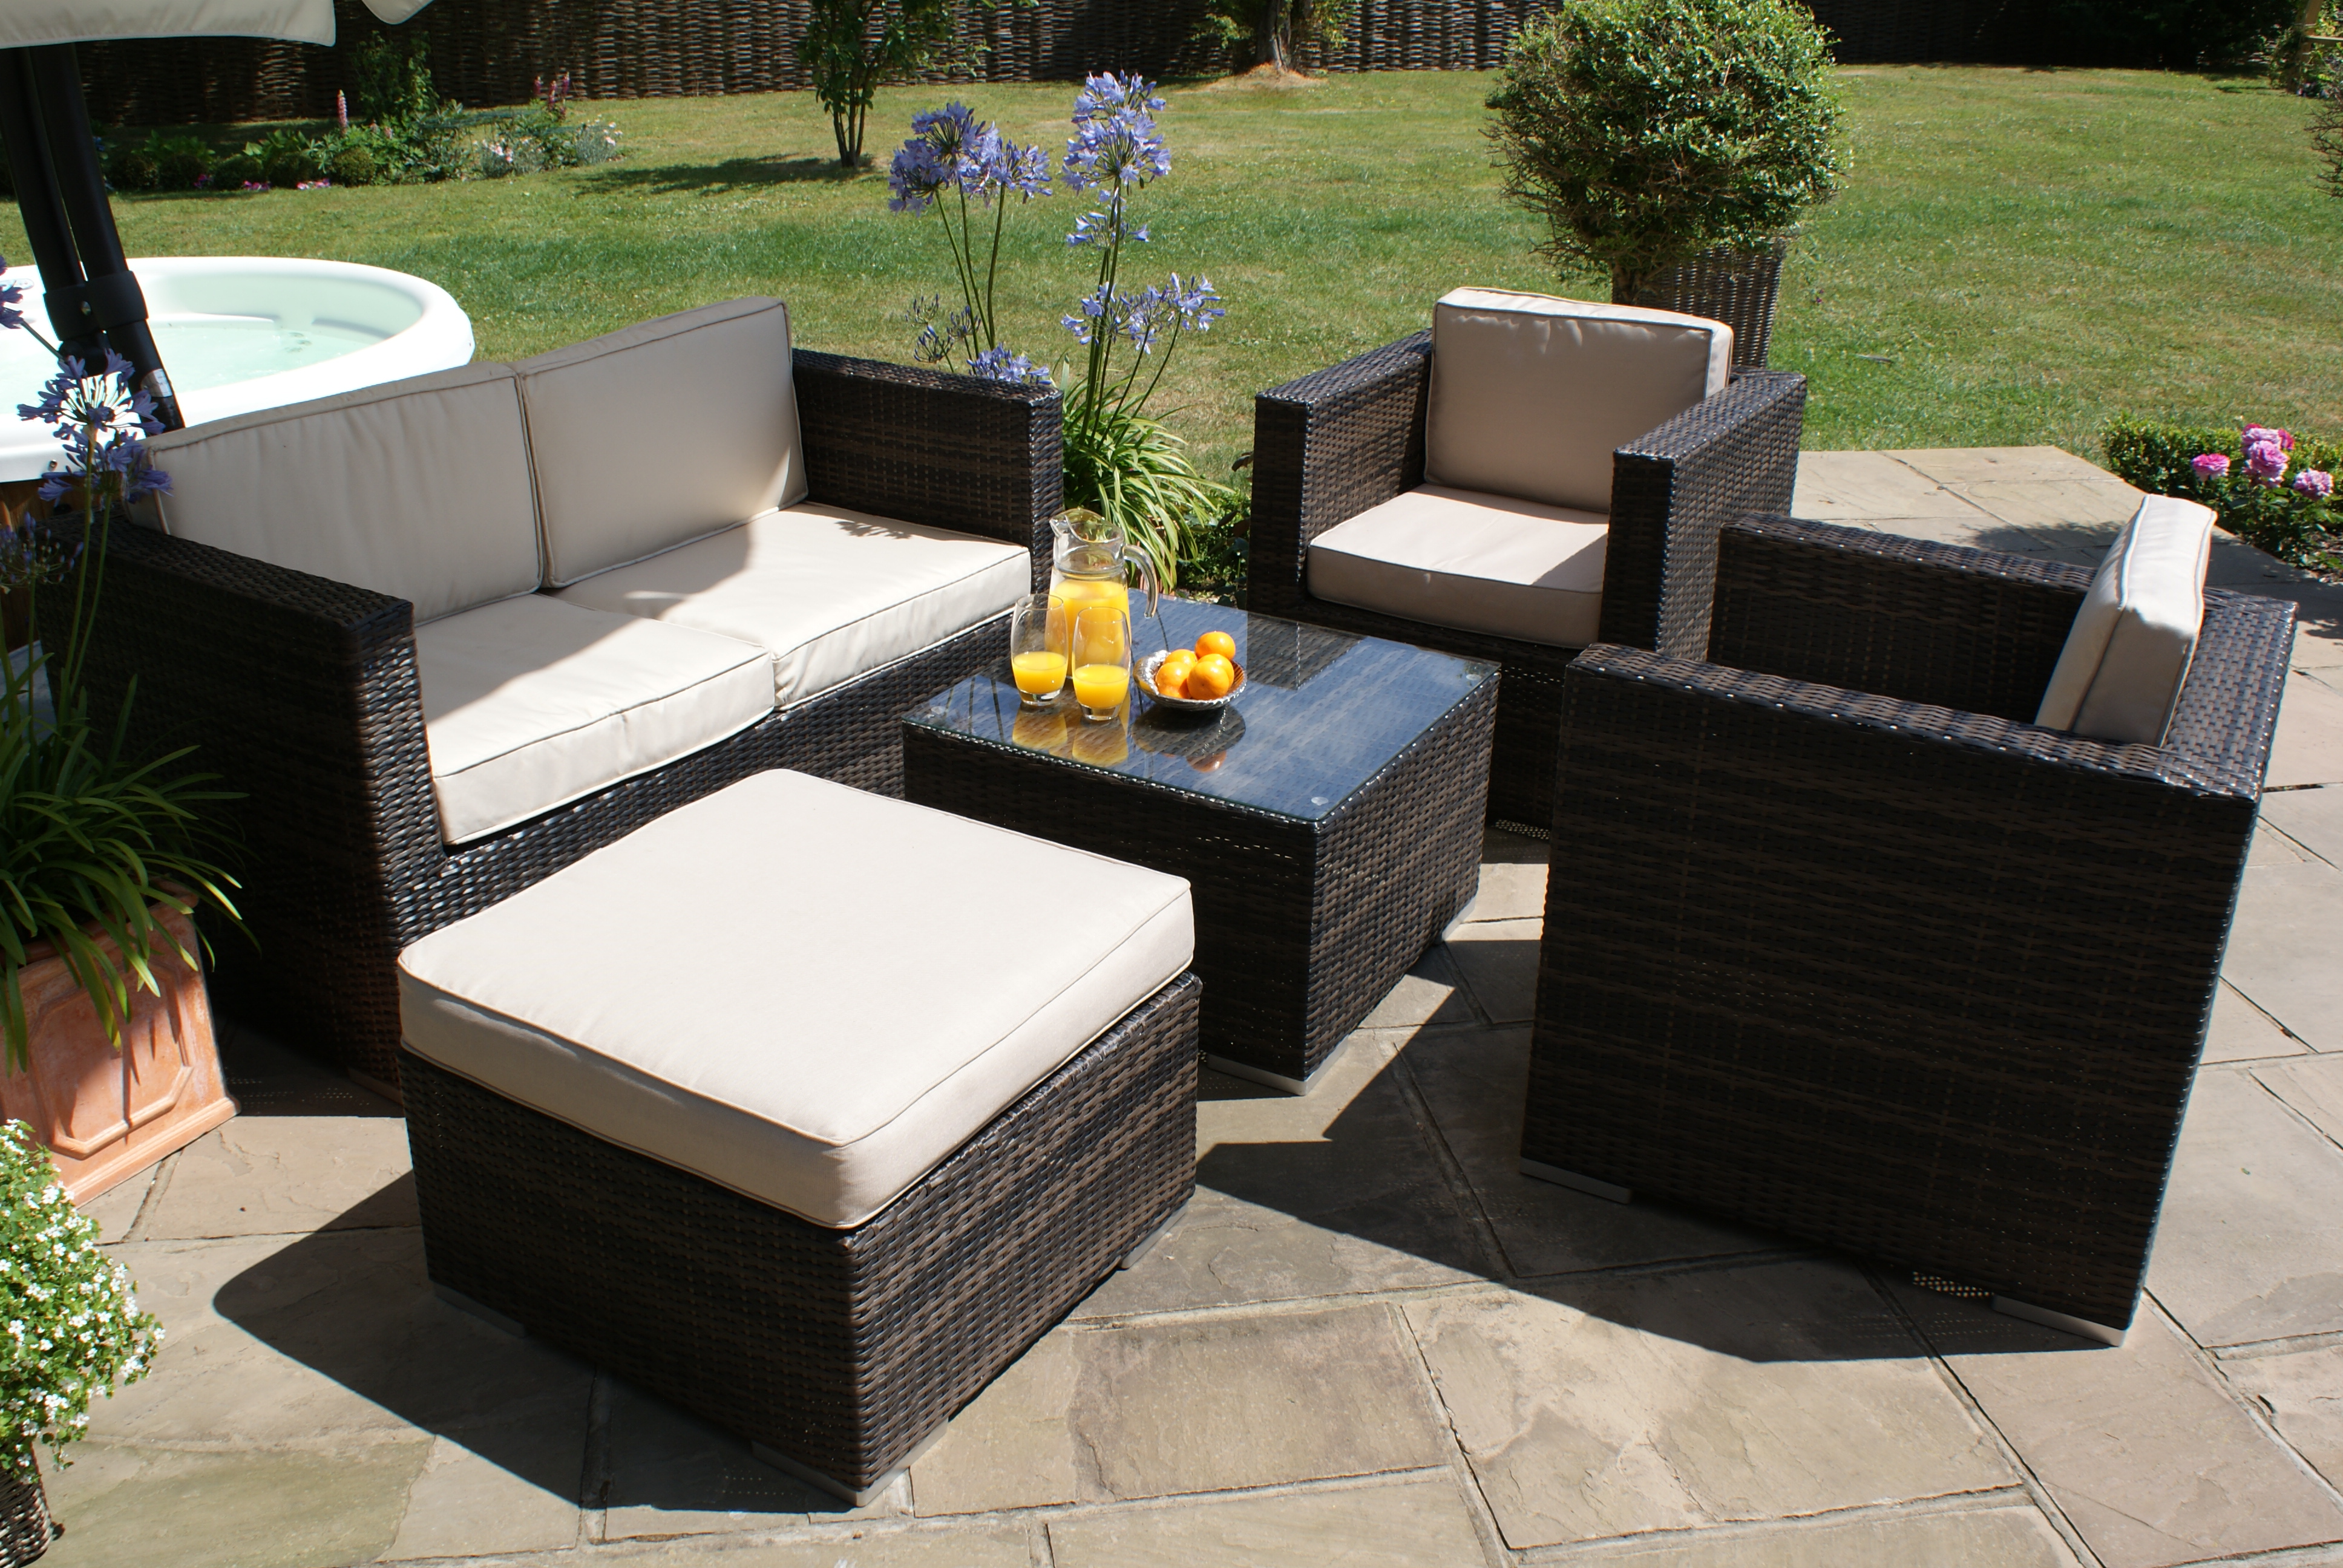 5 Piece Garden Sofa Set